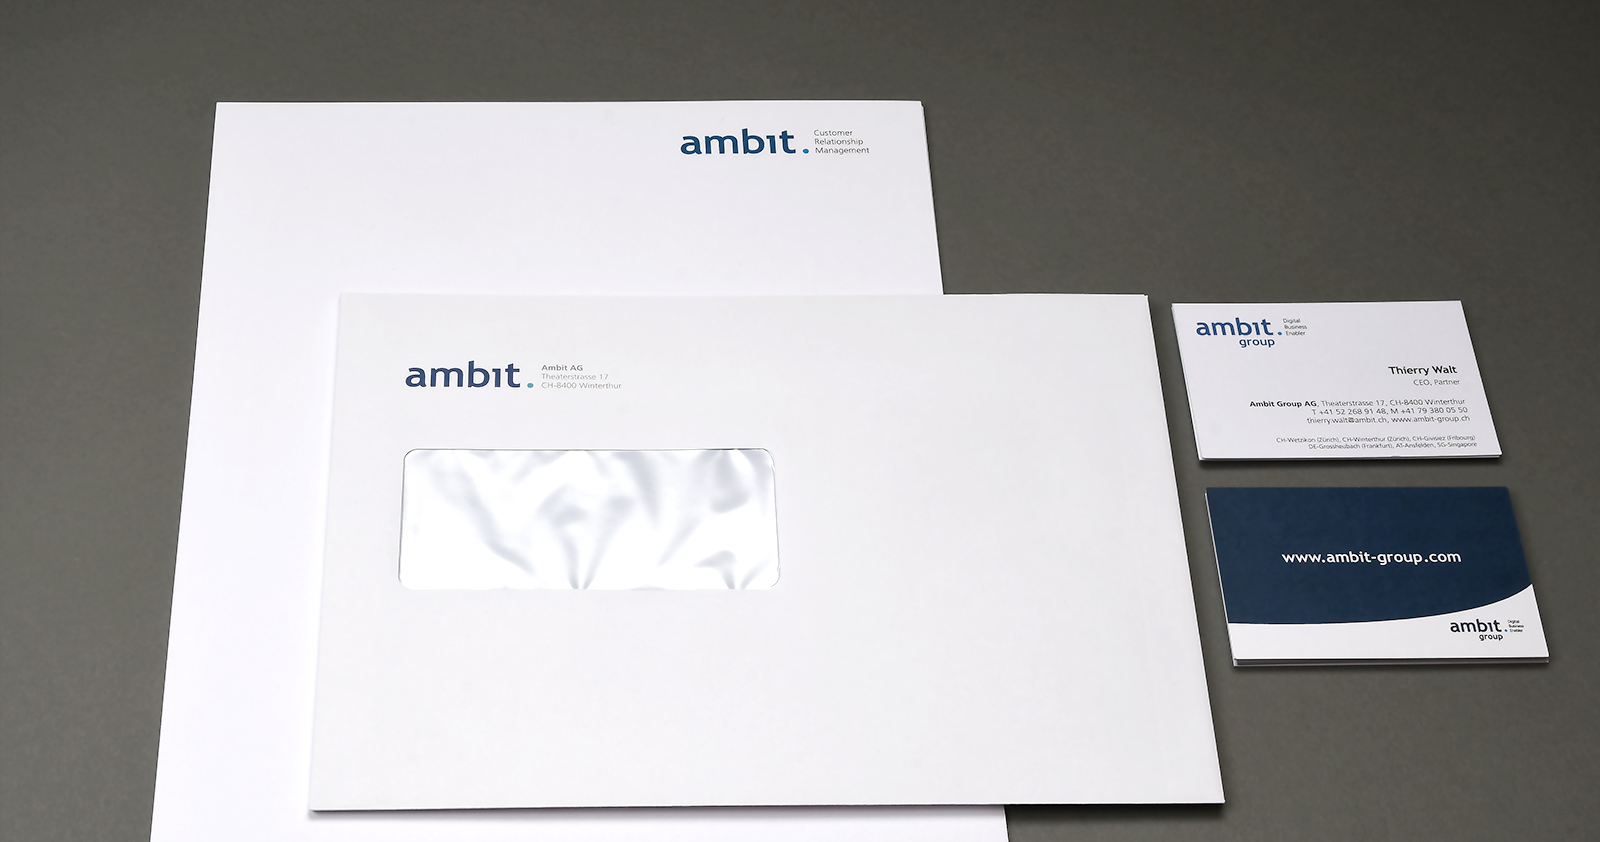 content-referenzen-details-ambit-group-briefschaften-desktop